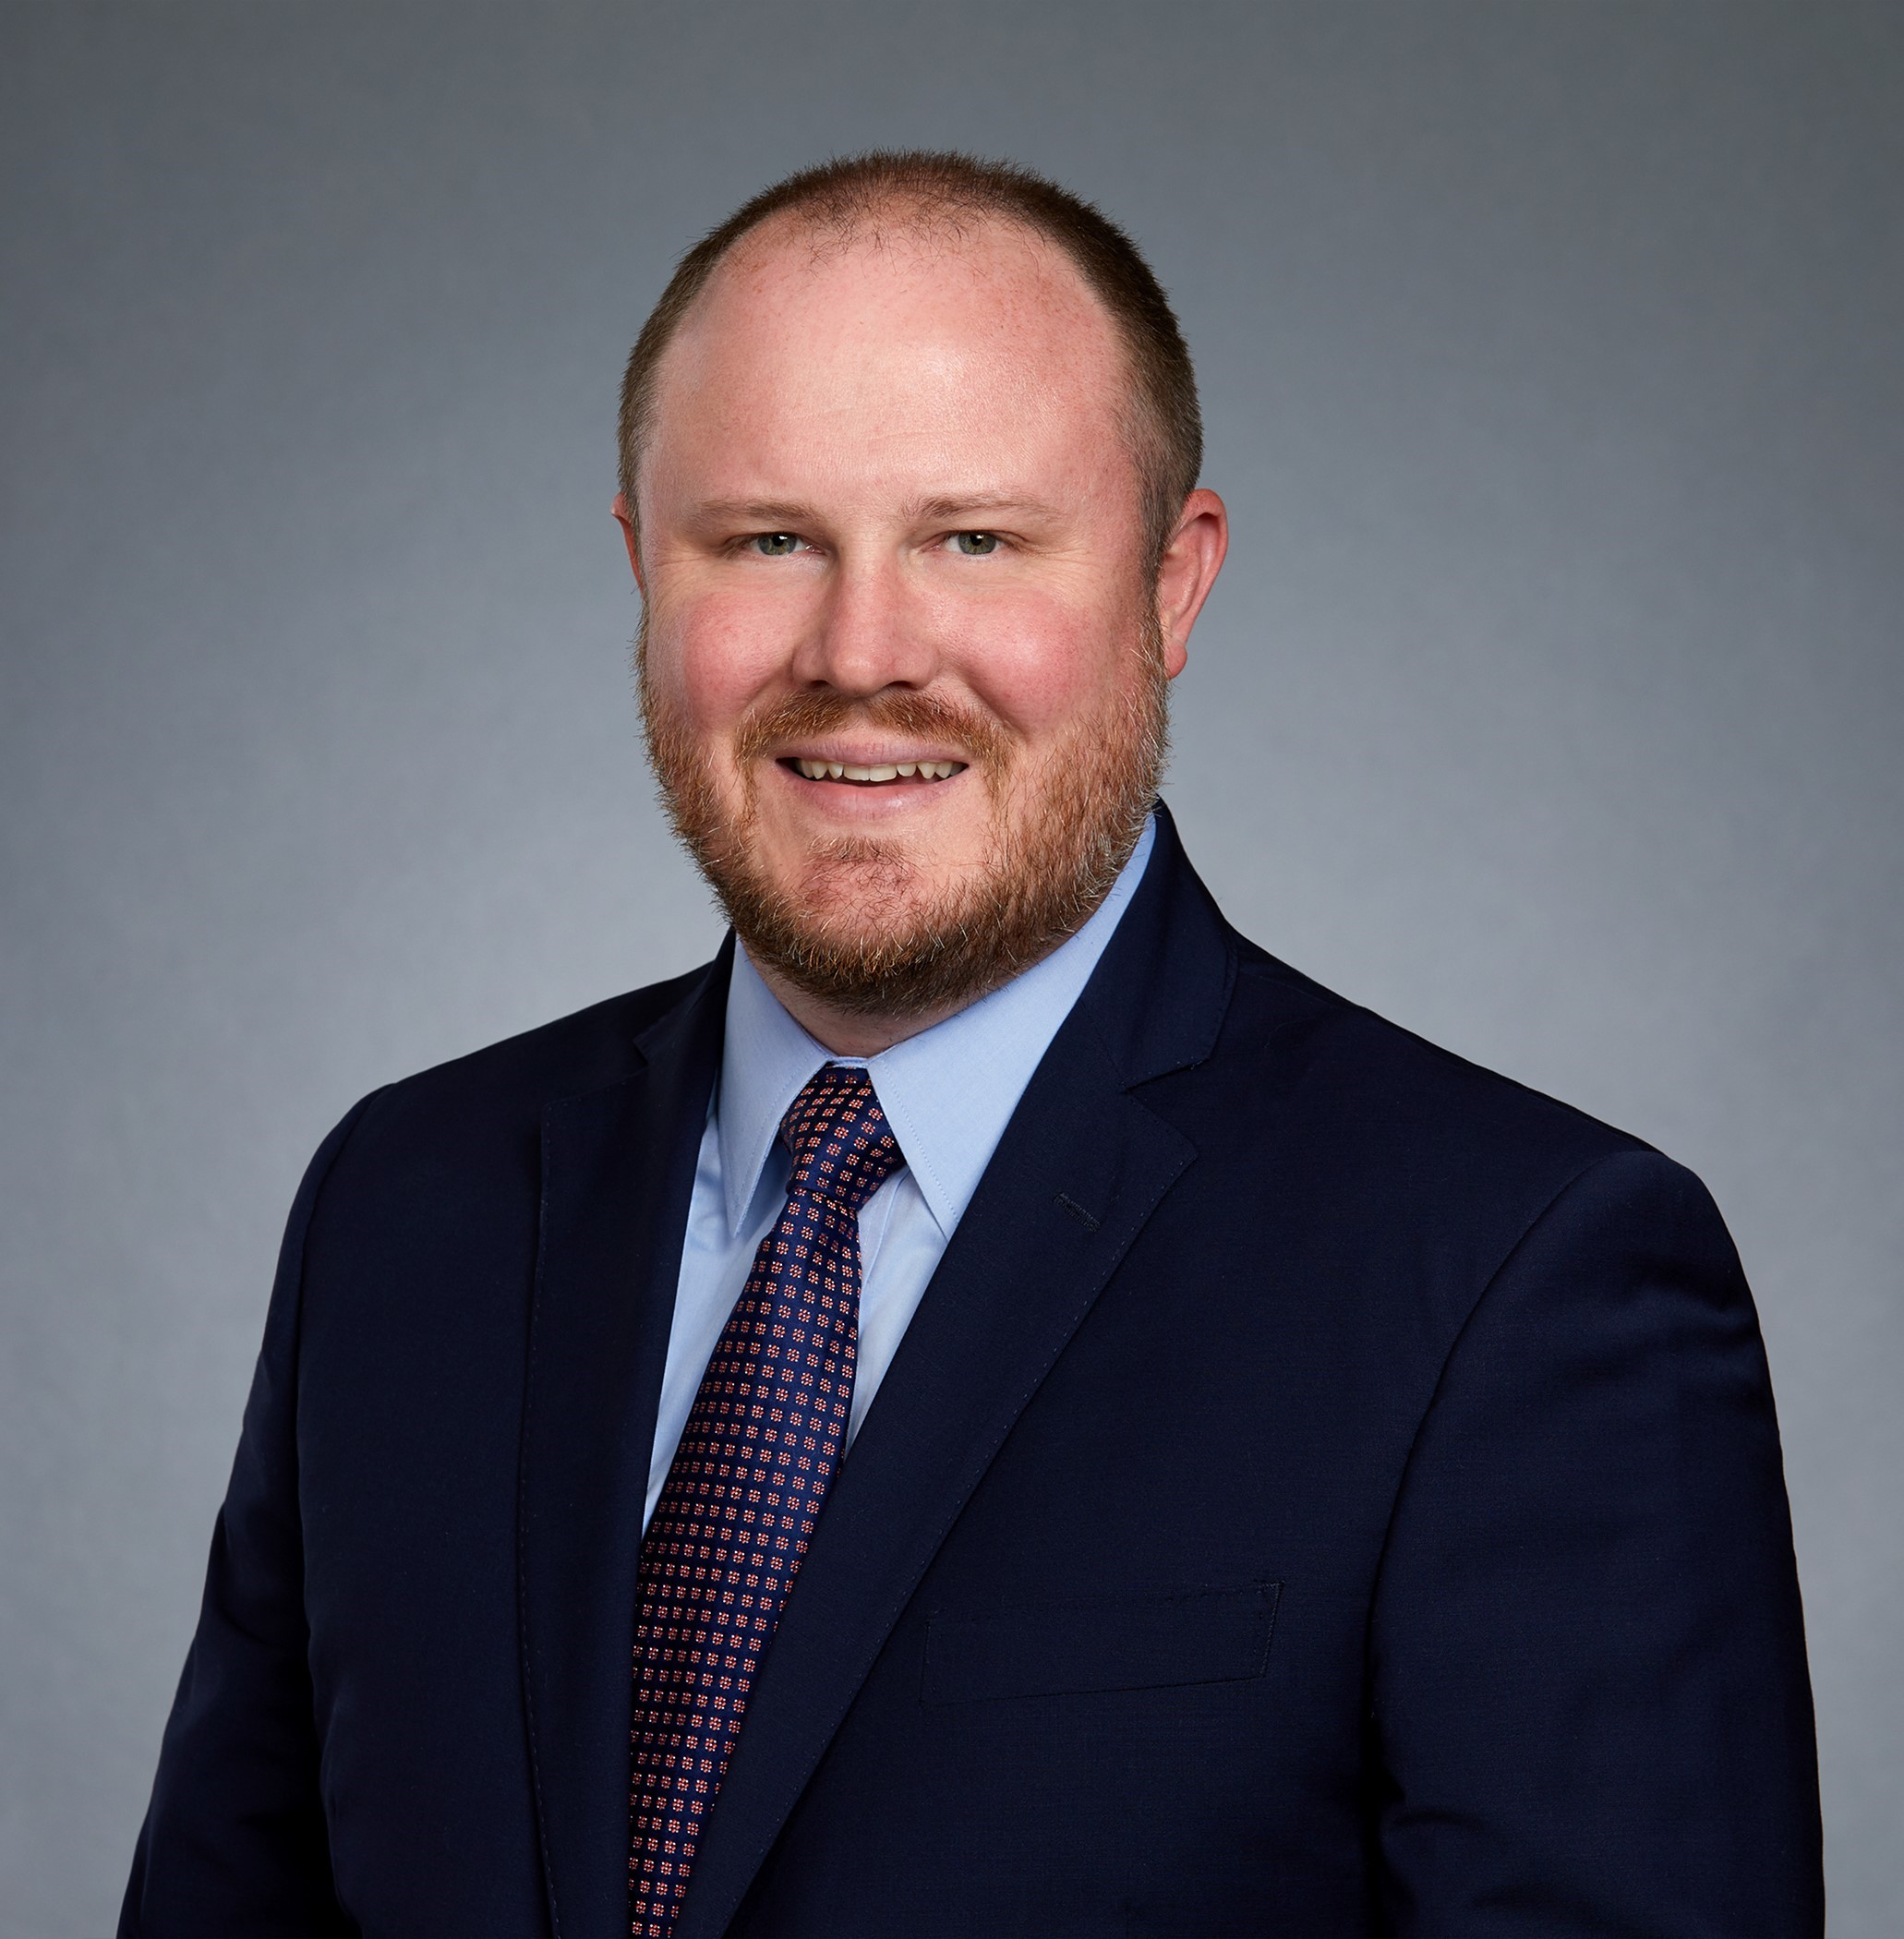 matt caldwell new headshot Jan